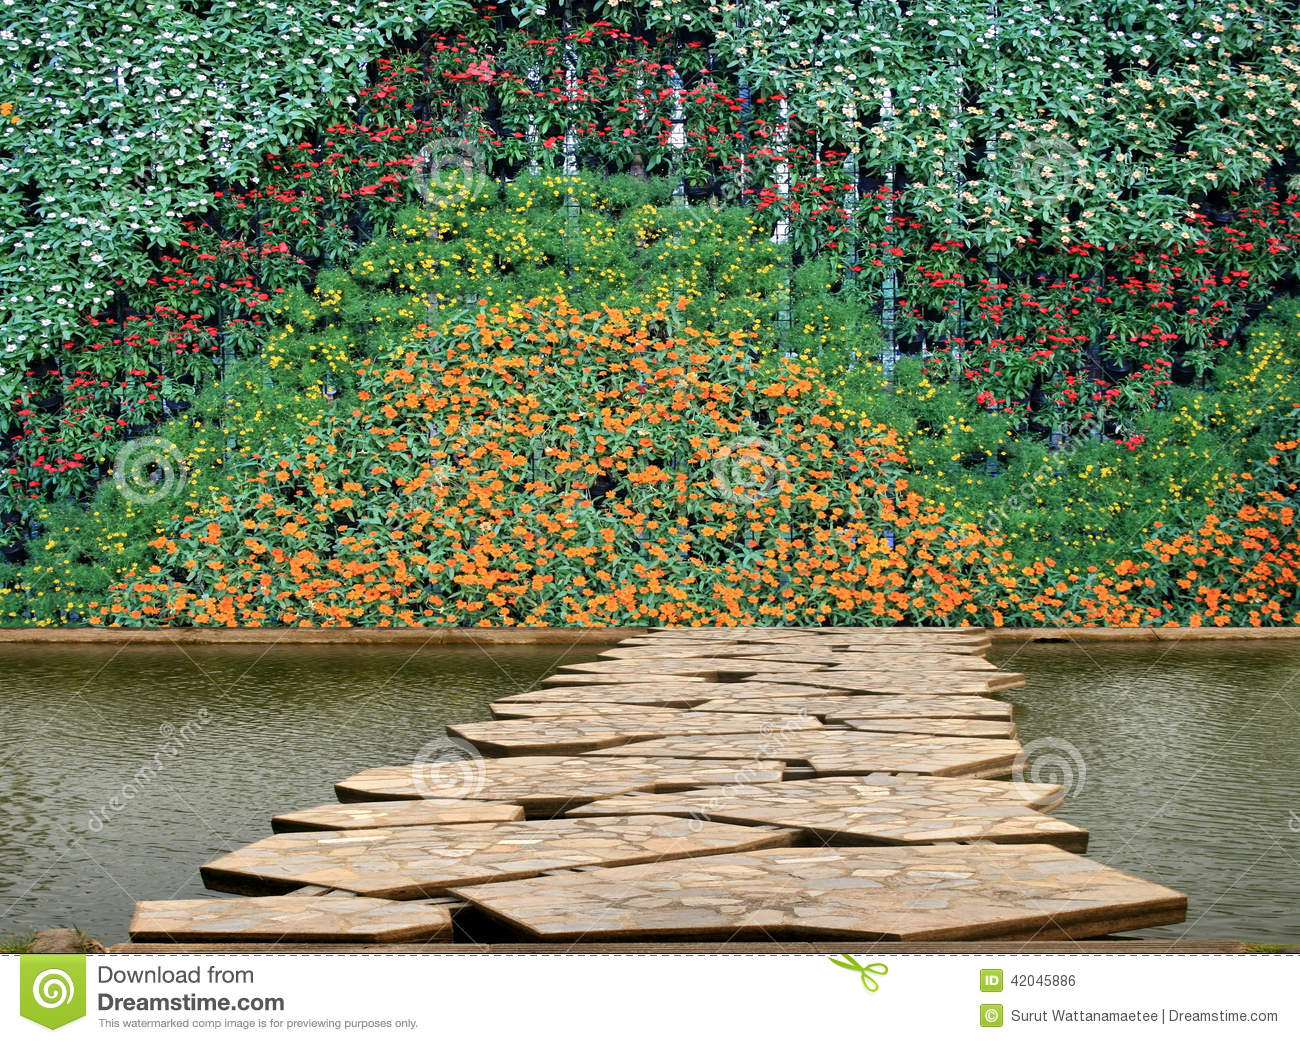 Flower and plant wall vertical garden stock image for Flower wall garden